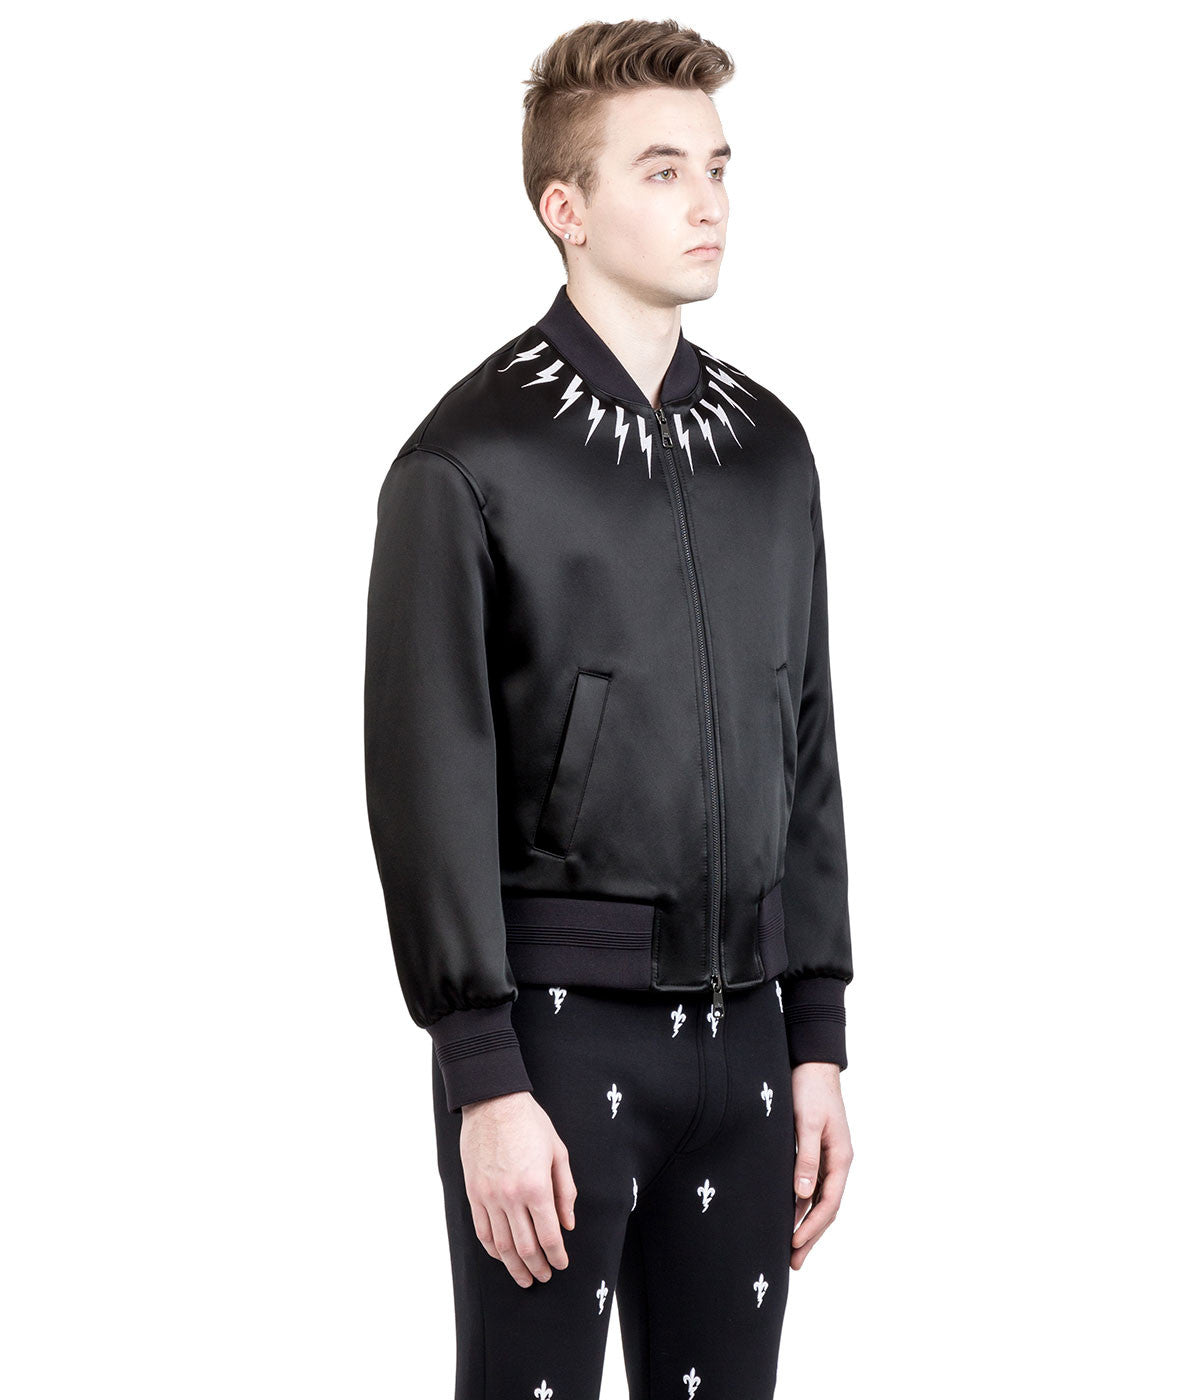 Black Thunder Bomber Jacket